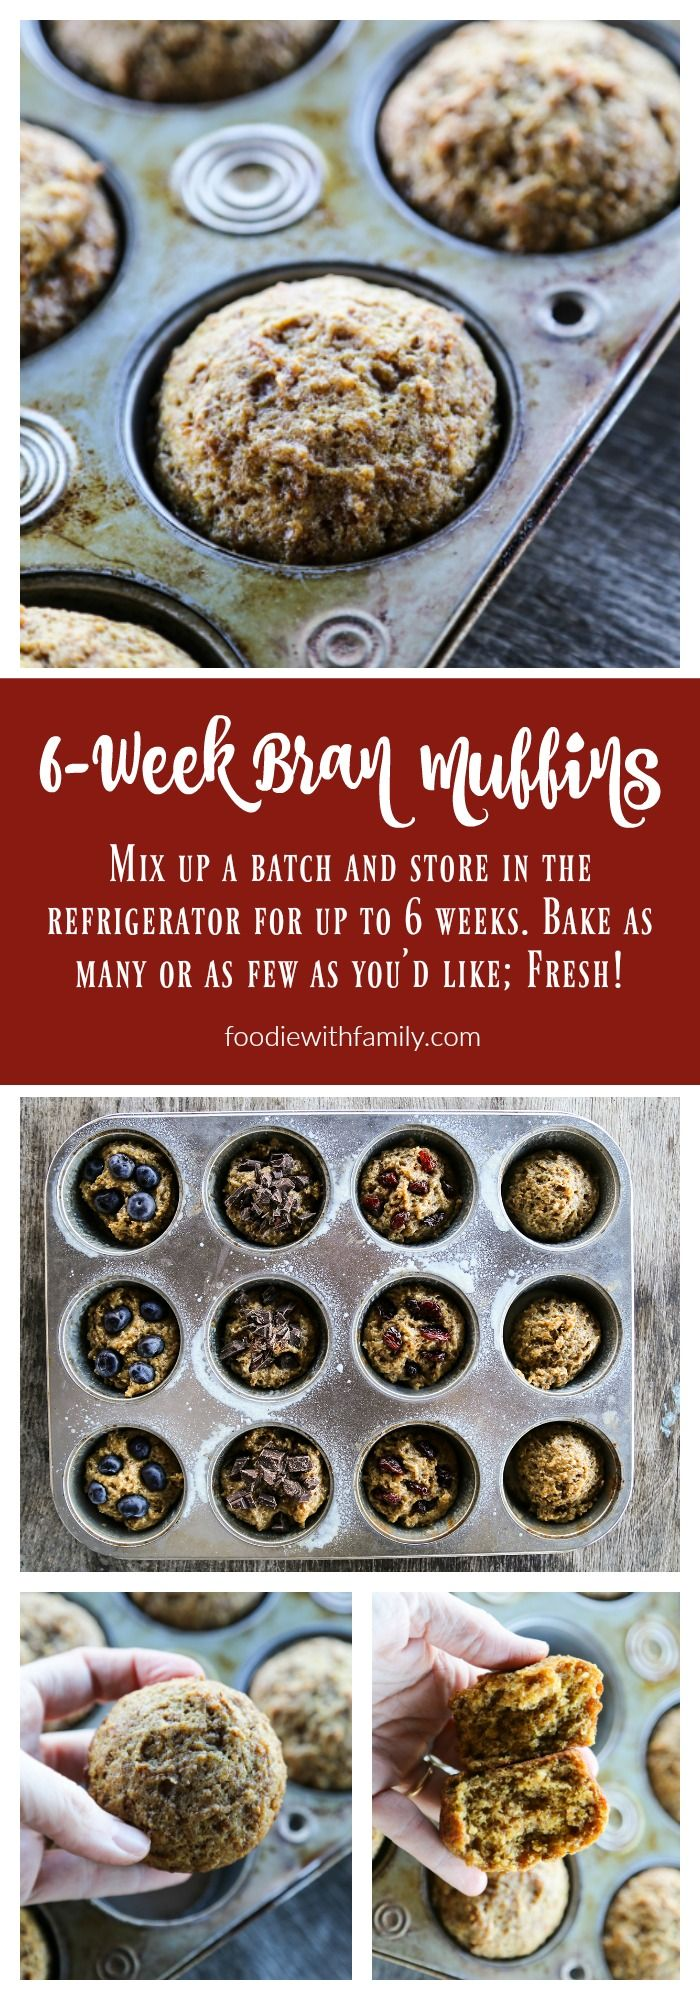 6-week Bran Muffins. Mix up this simple bran muffin batter and store it in your refrigerator for up to 6 weeks, baking as few or as many muffins as you'd like fresh when you want them! Bake plain or add in blueberries, dried fruits, or chocolate!